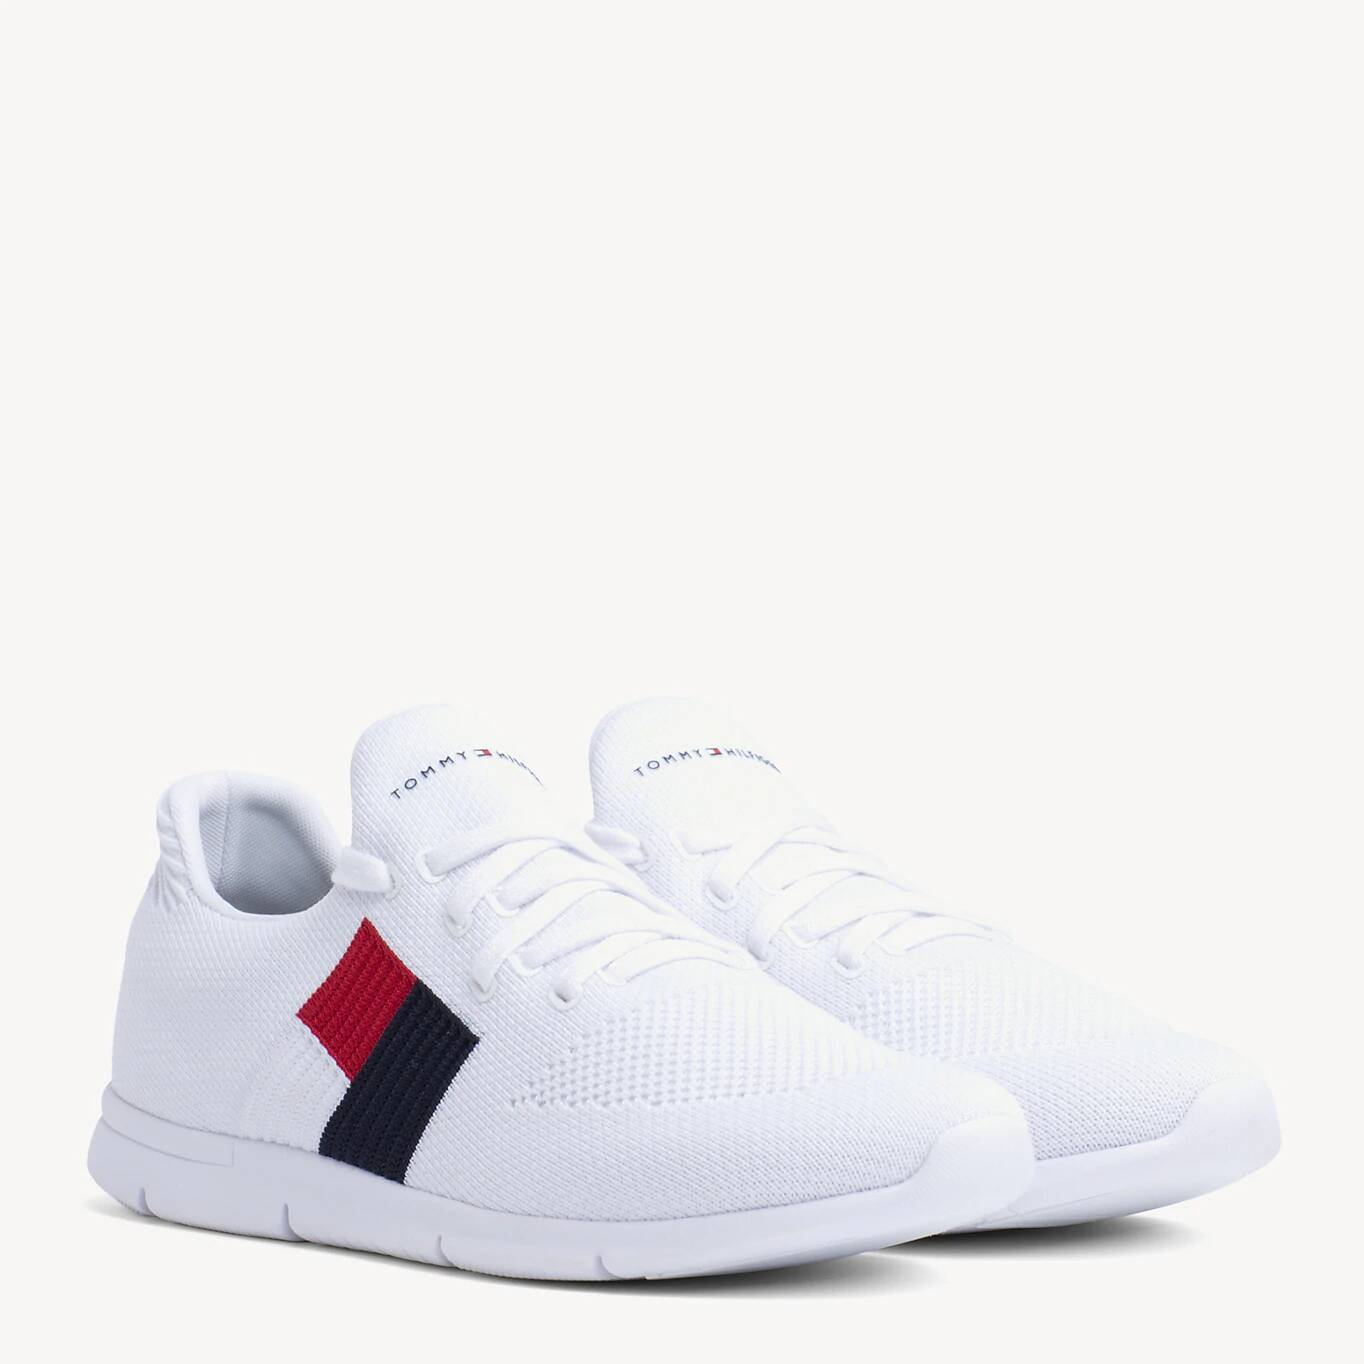 Tommy Hilfiger adidasi albi Knitted Flag Light Sneaker White